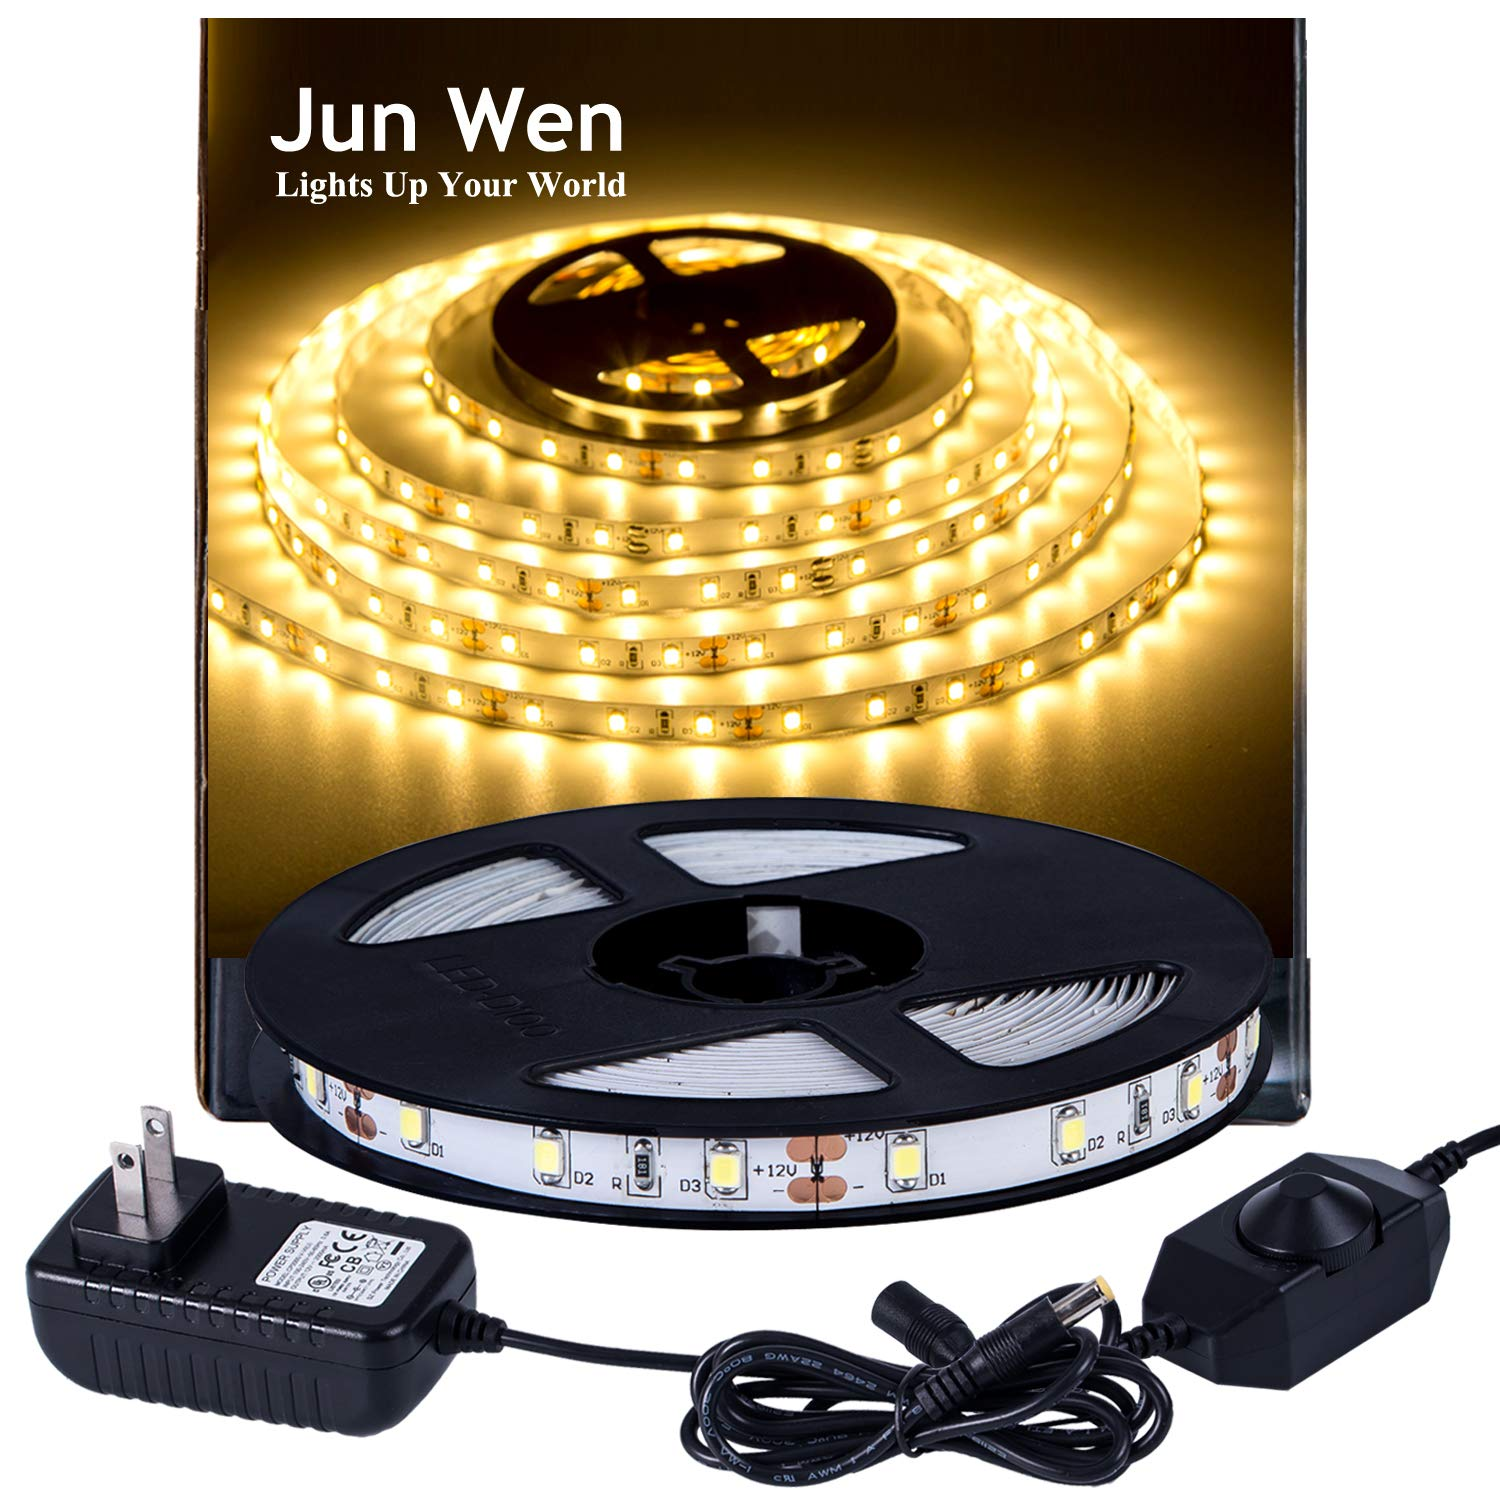 JUNWEN 16.4ft/5M LED Strip Light Kit 300 Units LED Tape SMD 2835 LEDs Non-Waterproof LED Lighting Strips with 2A UL Listed Power Supply for Kitchen Car Bar Hotels Clubs Shopping Mall(Warm White)